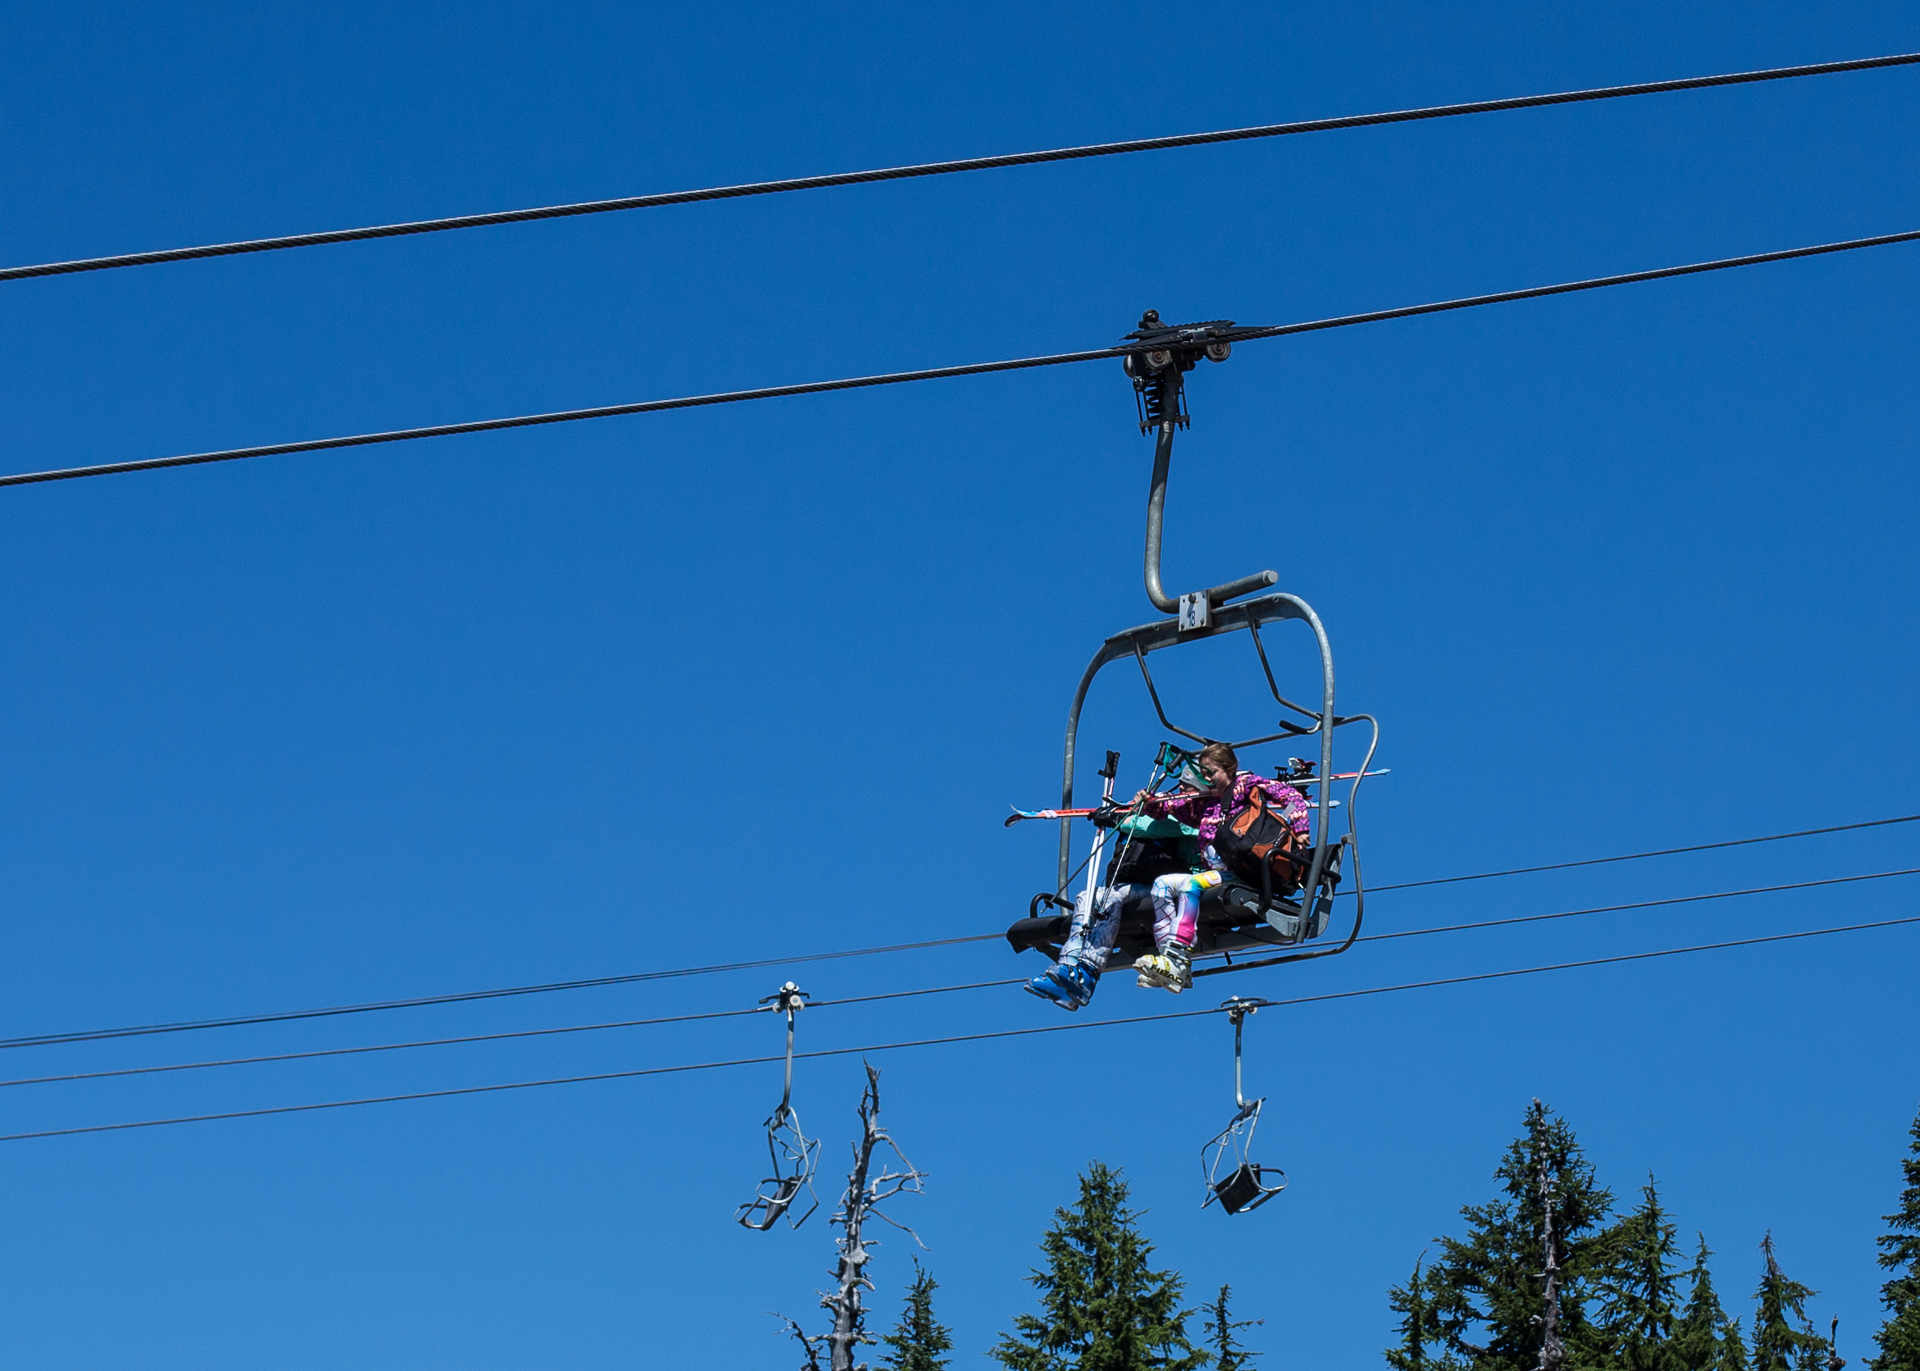 Summer skiers on the chairlift.